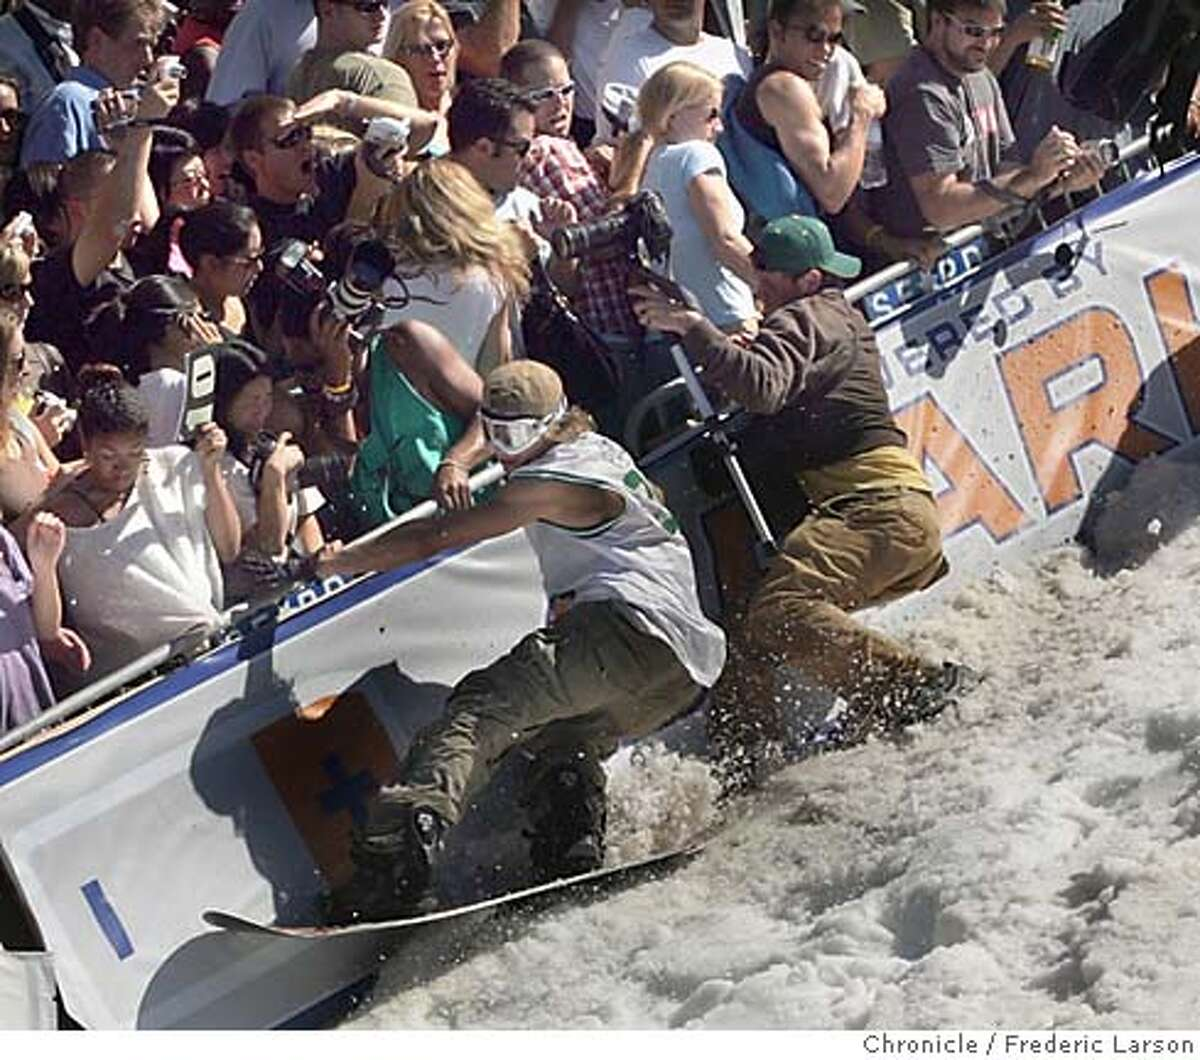 SKIJUMP_0643_fl.jpg Too close for comfort as many trick jump skier hit the wall on Filmore Street in SF. Thousands of people converged late this morning on a hillside intersection of San Francisco's elite Pacific Heights neighborhood where contractors put the finishing touches on a 2-block run of snow and a ramp for a promotional ski-jump competition. Bathed in warm sunlight that was pushing temperatures into the upper 70s, onlookers arrived in tank-tops, shorts and sandals, carrying picnic lunches and with their dogs in tow. Some of the attire suggested employees were ducking out of work. And some of the assembled were youngsters who apparently got a pass from attending school today -- at least to get a glimpse of Icer Air 2005. 9/30/05 San Francisco CA Frederic Larson The San Francisco Chronicle